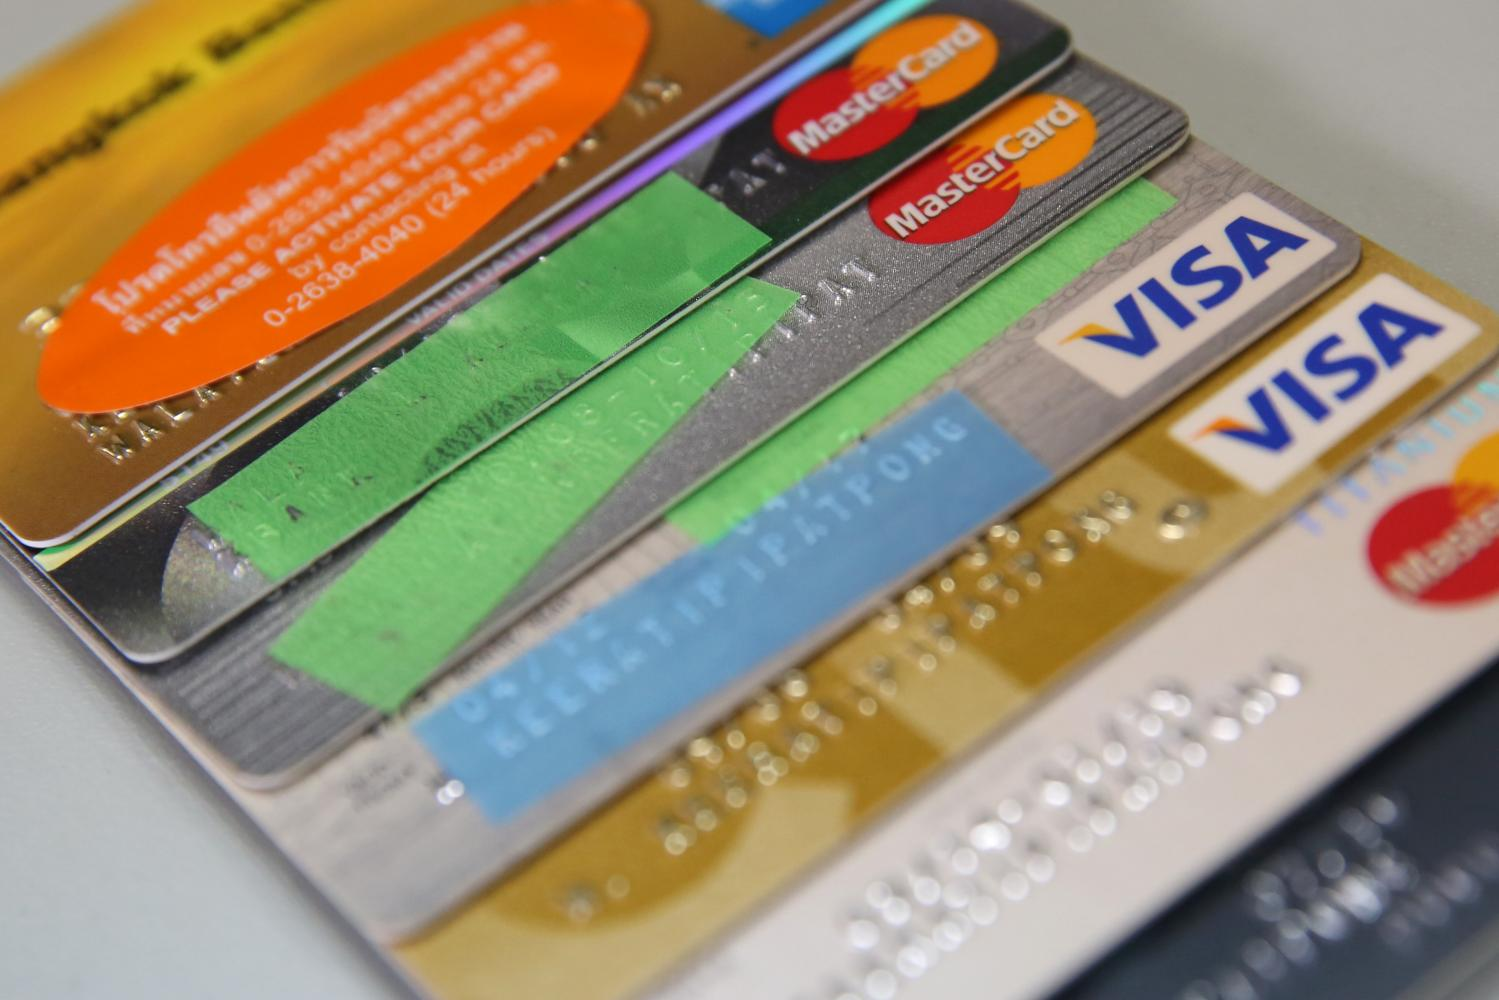 Banks have cut interest rates for credit cards to help millions of people facing financial stress.(Photo by Varuth Hirunyatheb)